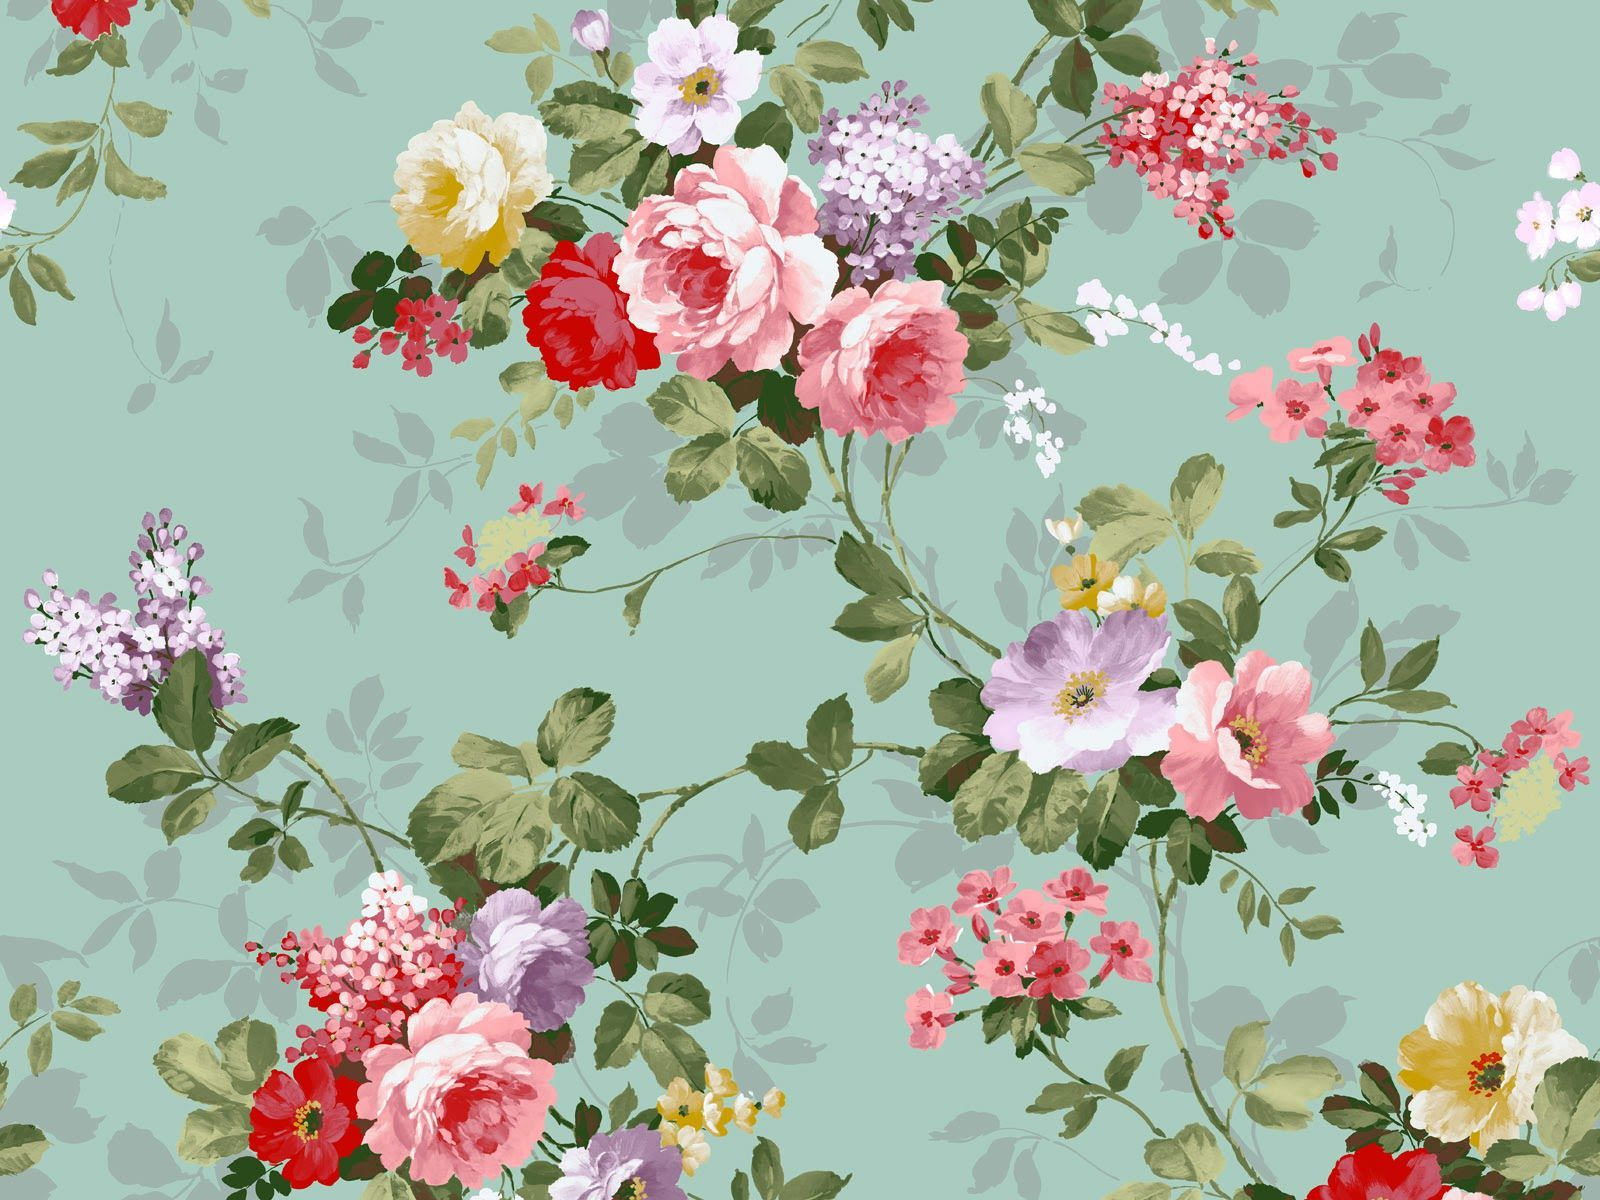 This Is One Of Cath Kidstons More Known Prints With The Flowers